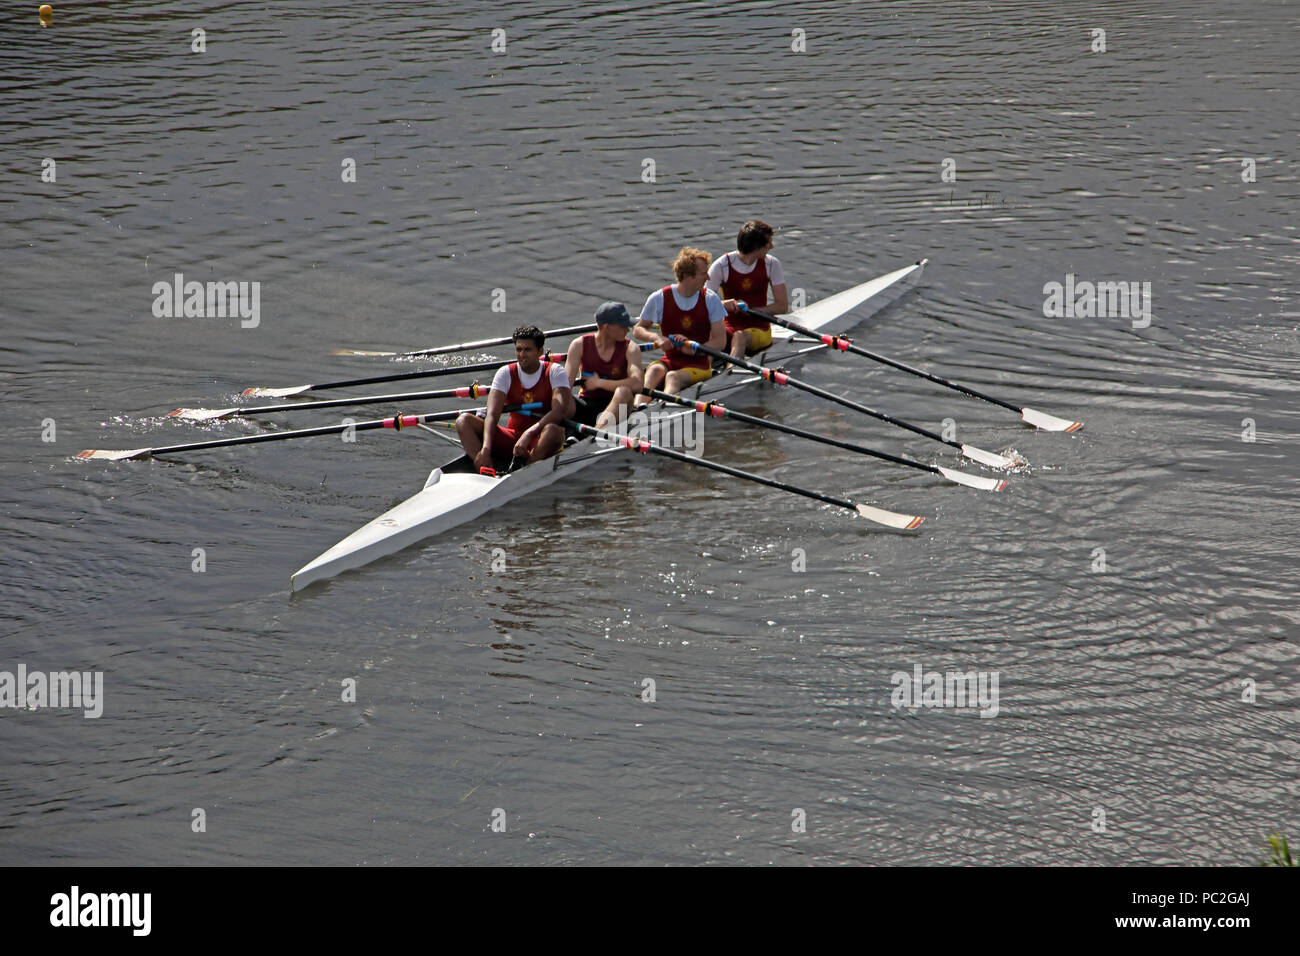 Liverpool Victoria Coxless Mens Quad,at Warrington Rowing Club 2018 Summer regatta, Howley lane, Mersey River, Cheshire, North West England, UK Stock Photo